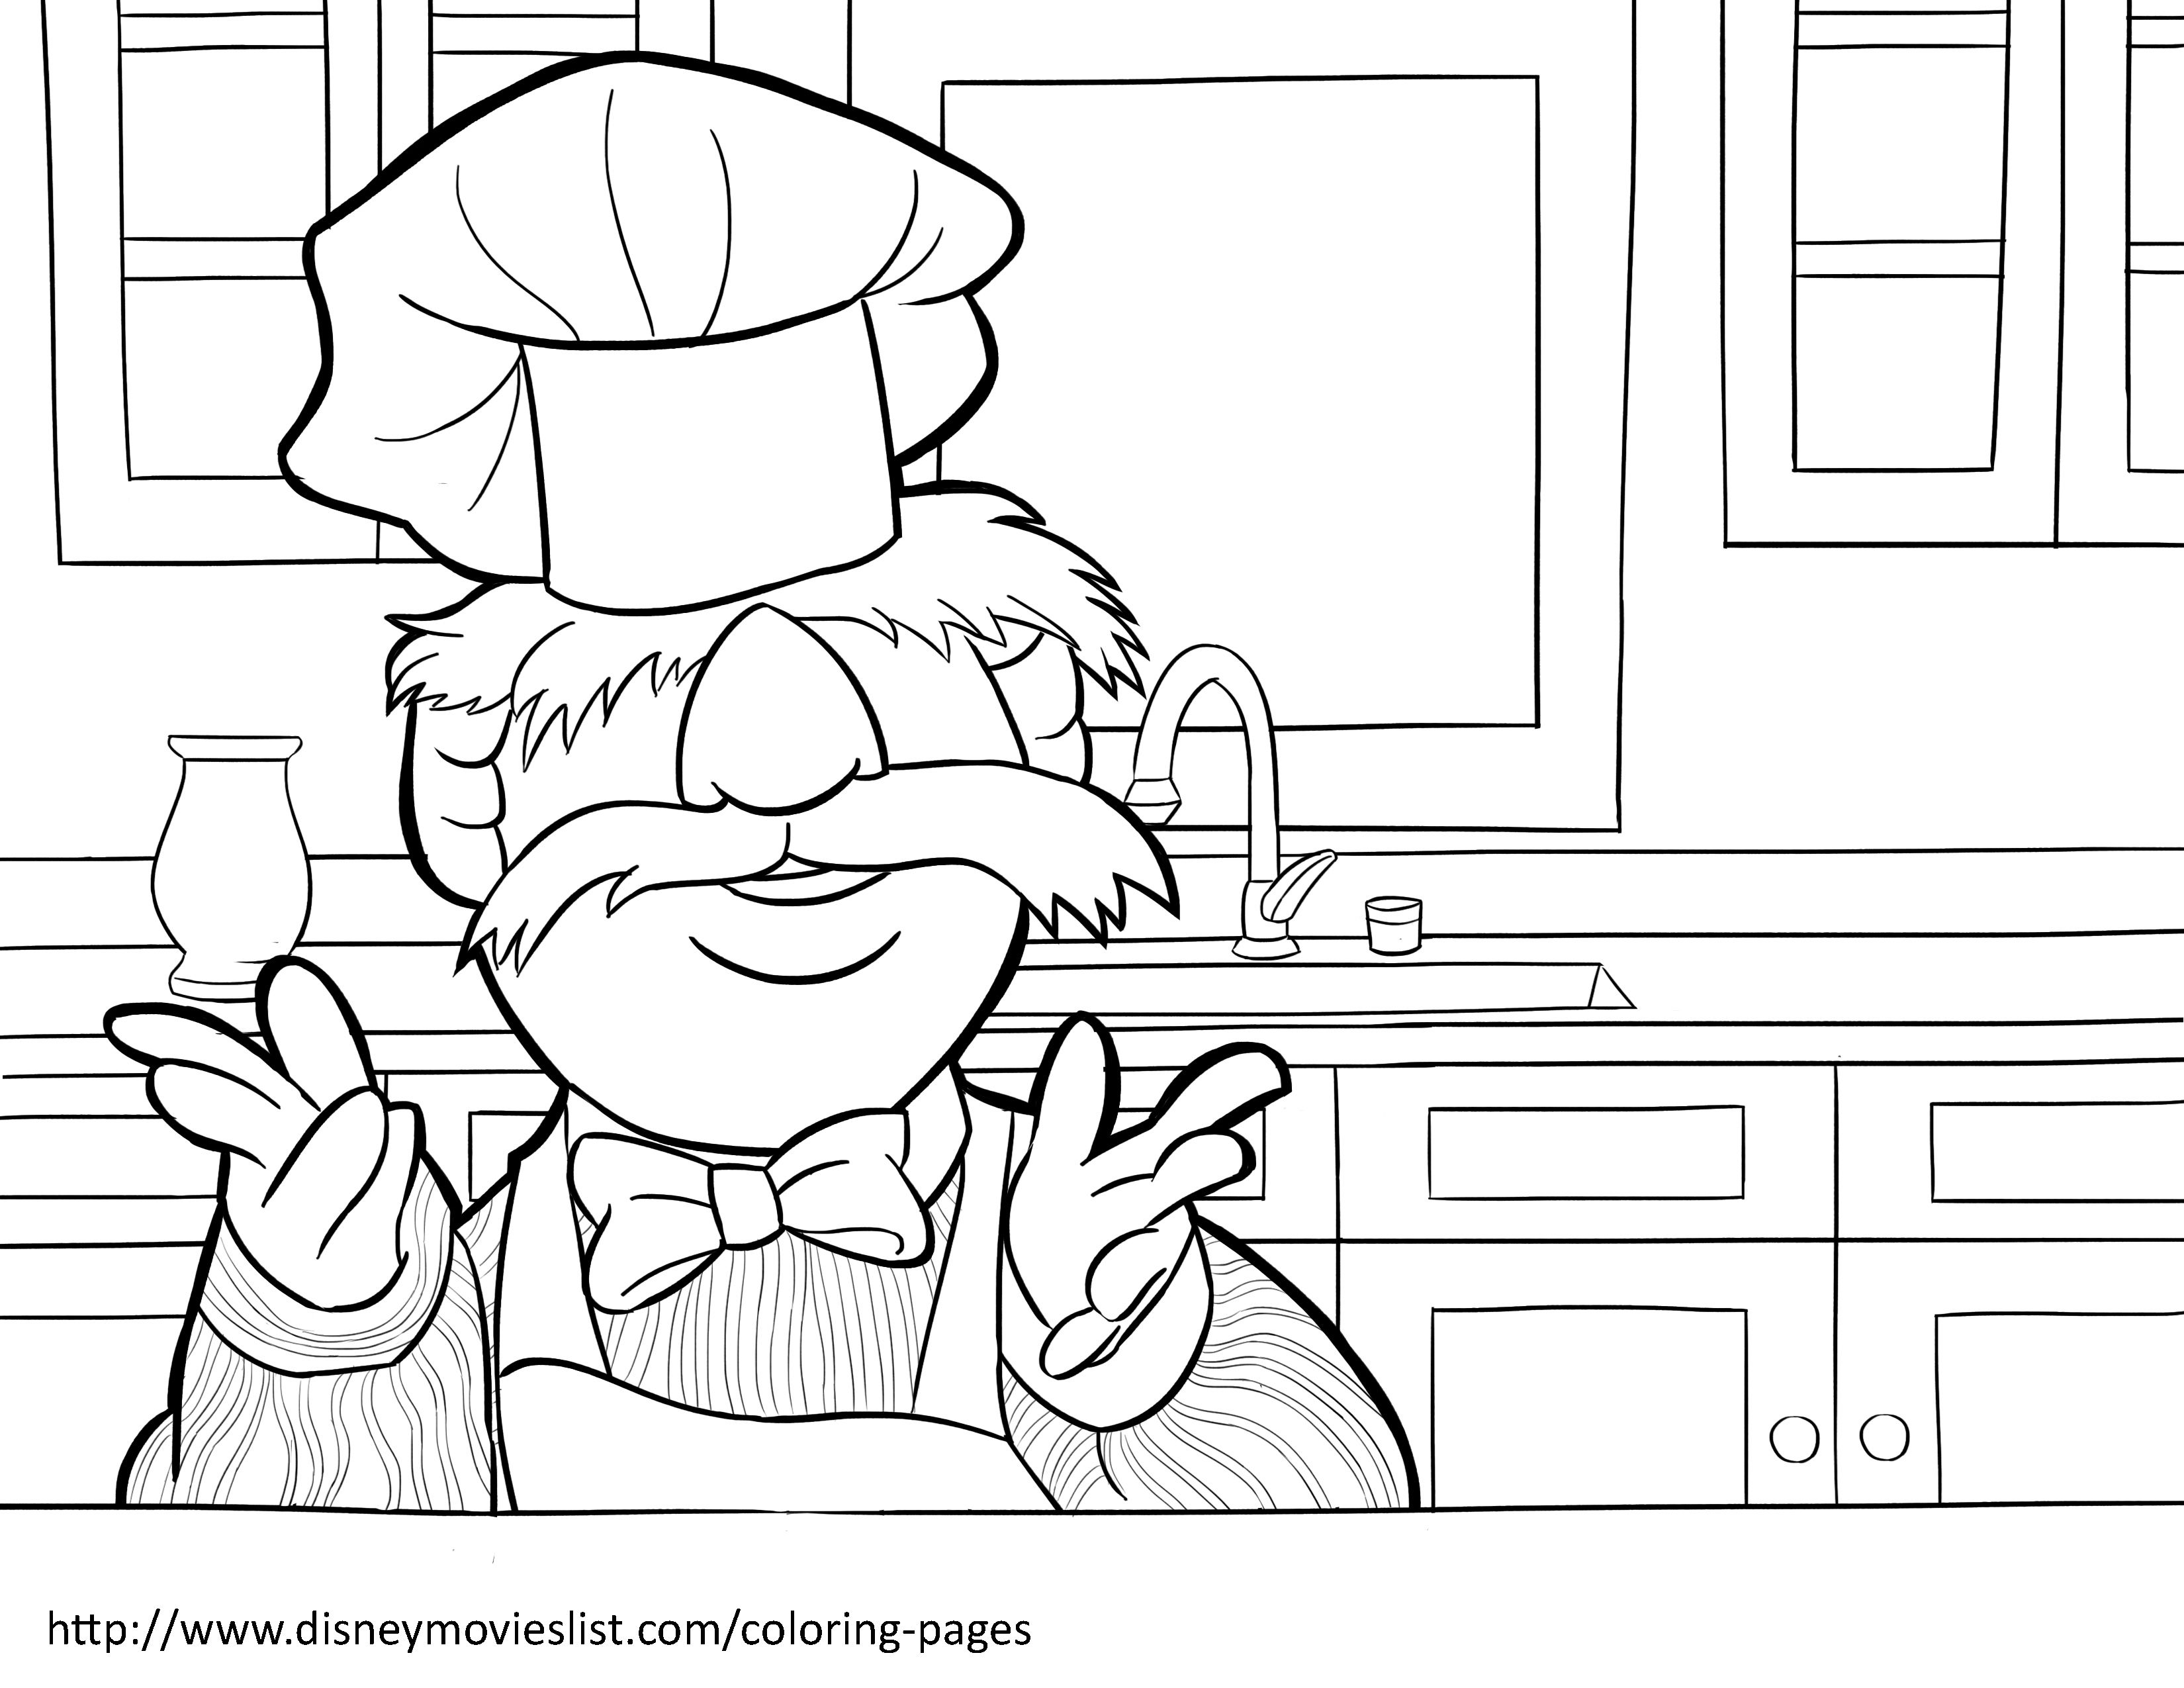 Disney S The Muppets Swedish Chef Coloring Page